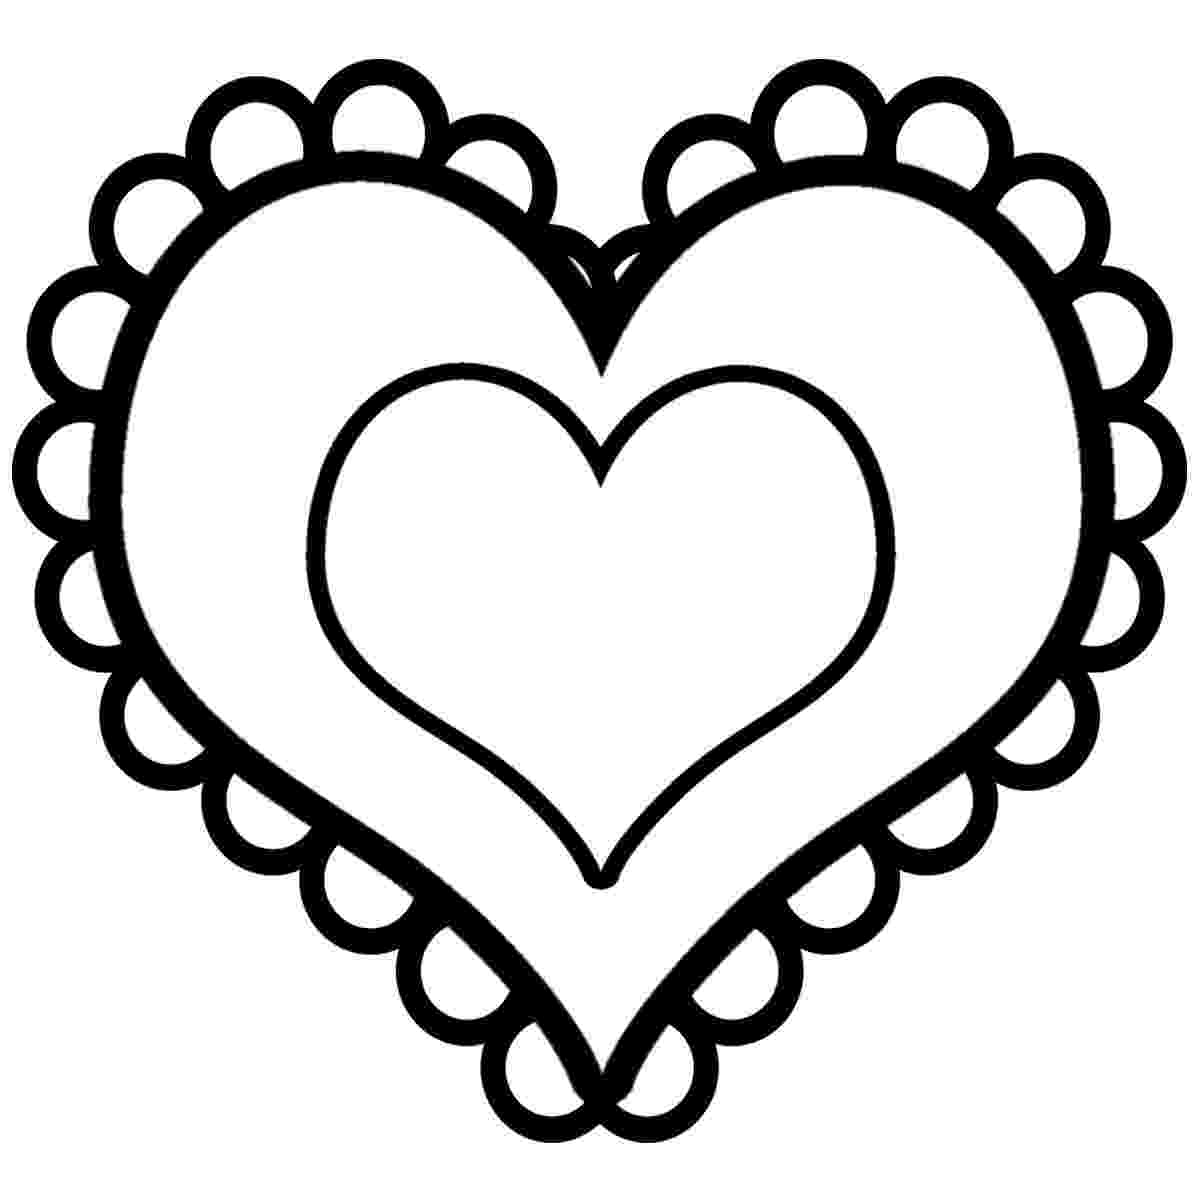 heart color sheet free printable heart coloring pages for kids color sheet heart